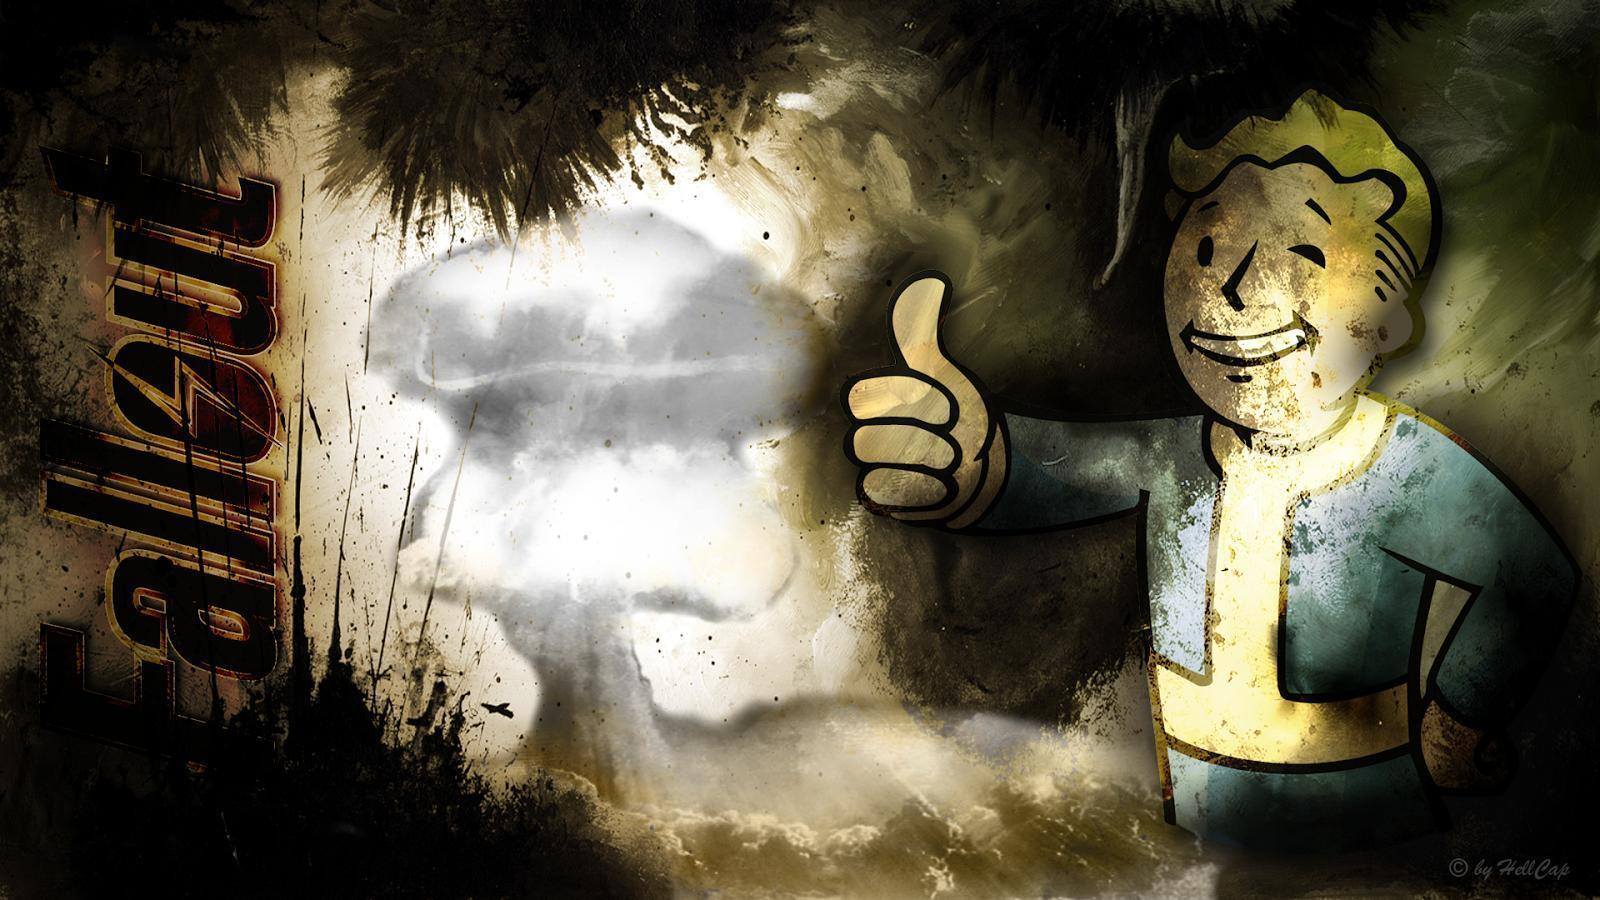 AllOut FallOut: Fallout Vault Boy Wallpaper by Netbase 1920 x 1080